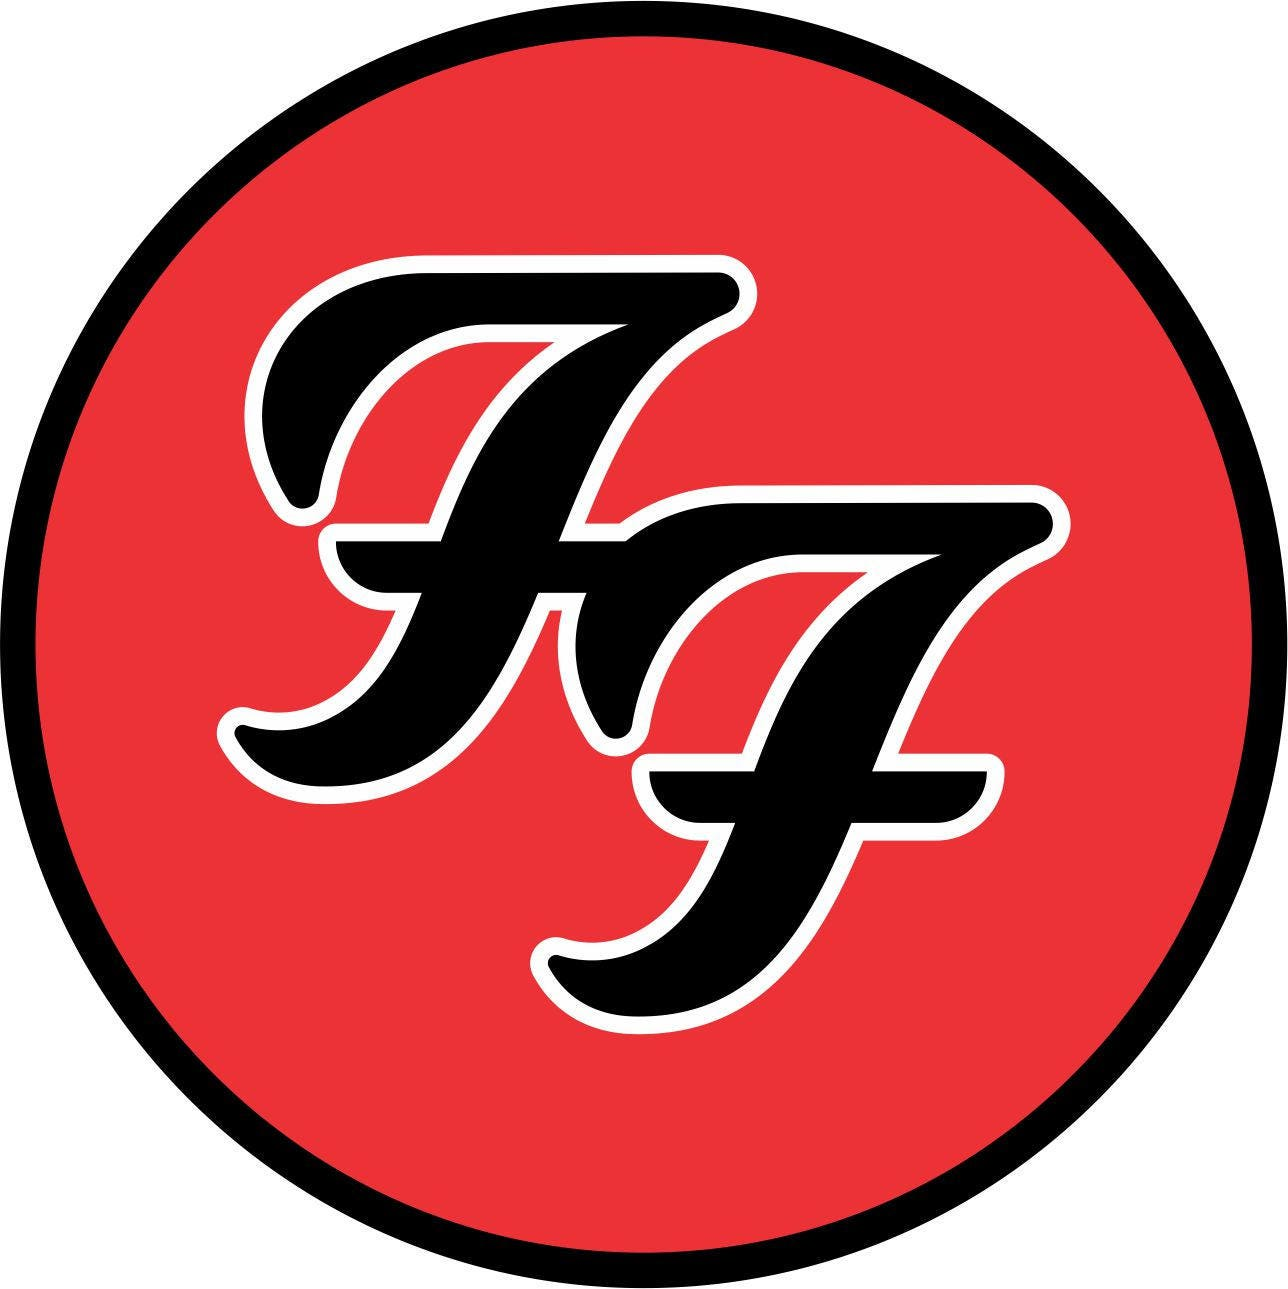 Foo Fighters Vinyl Sticker Decal full colour band logo  Foo Fighters Vi...